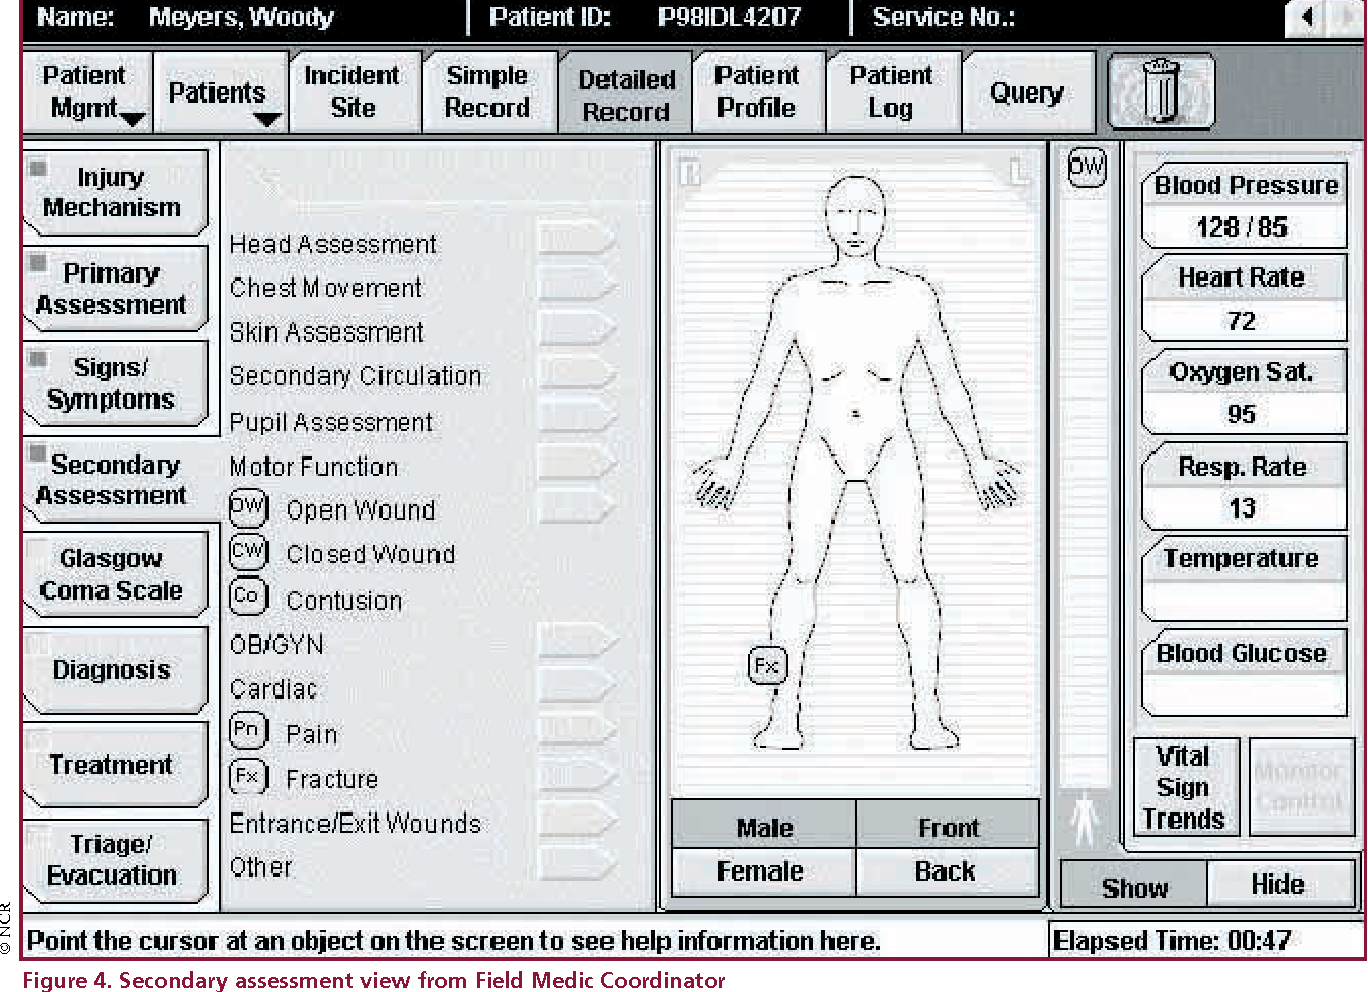 Figure 4. Secondary assessment view from Field Medic Coordinator